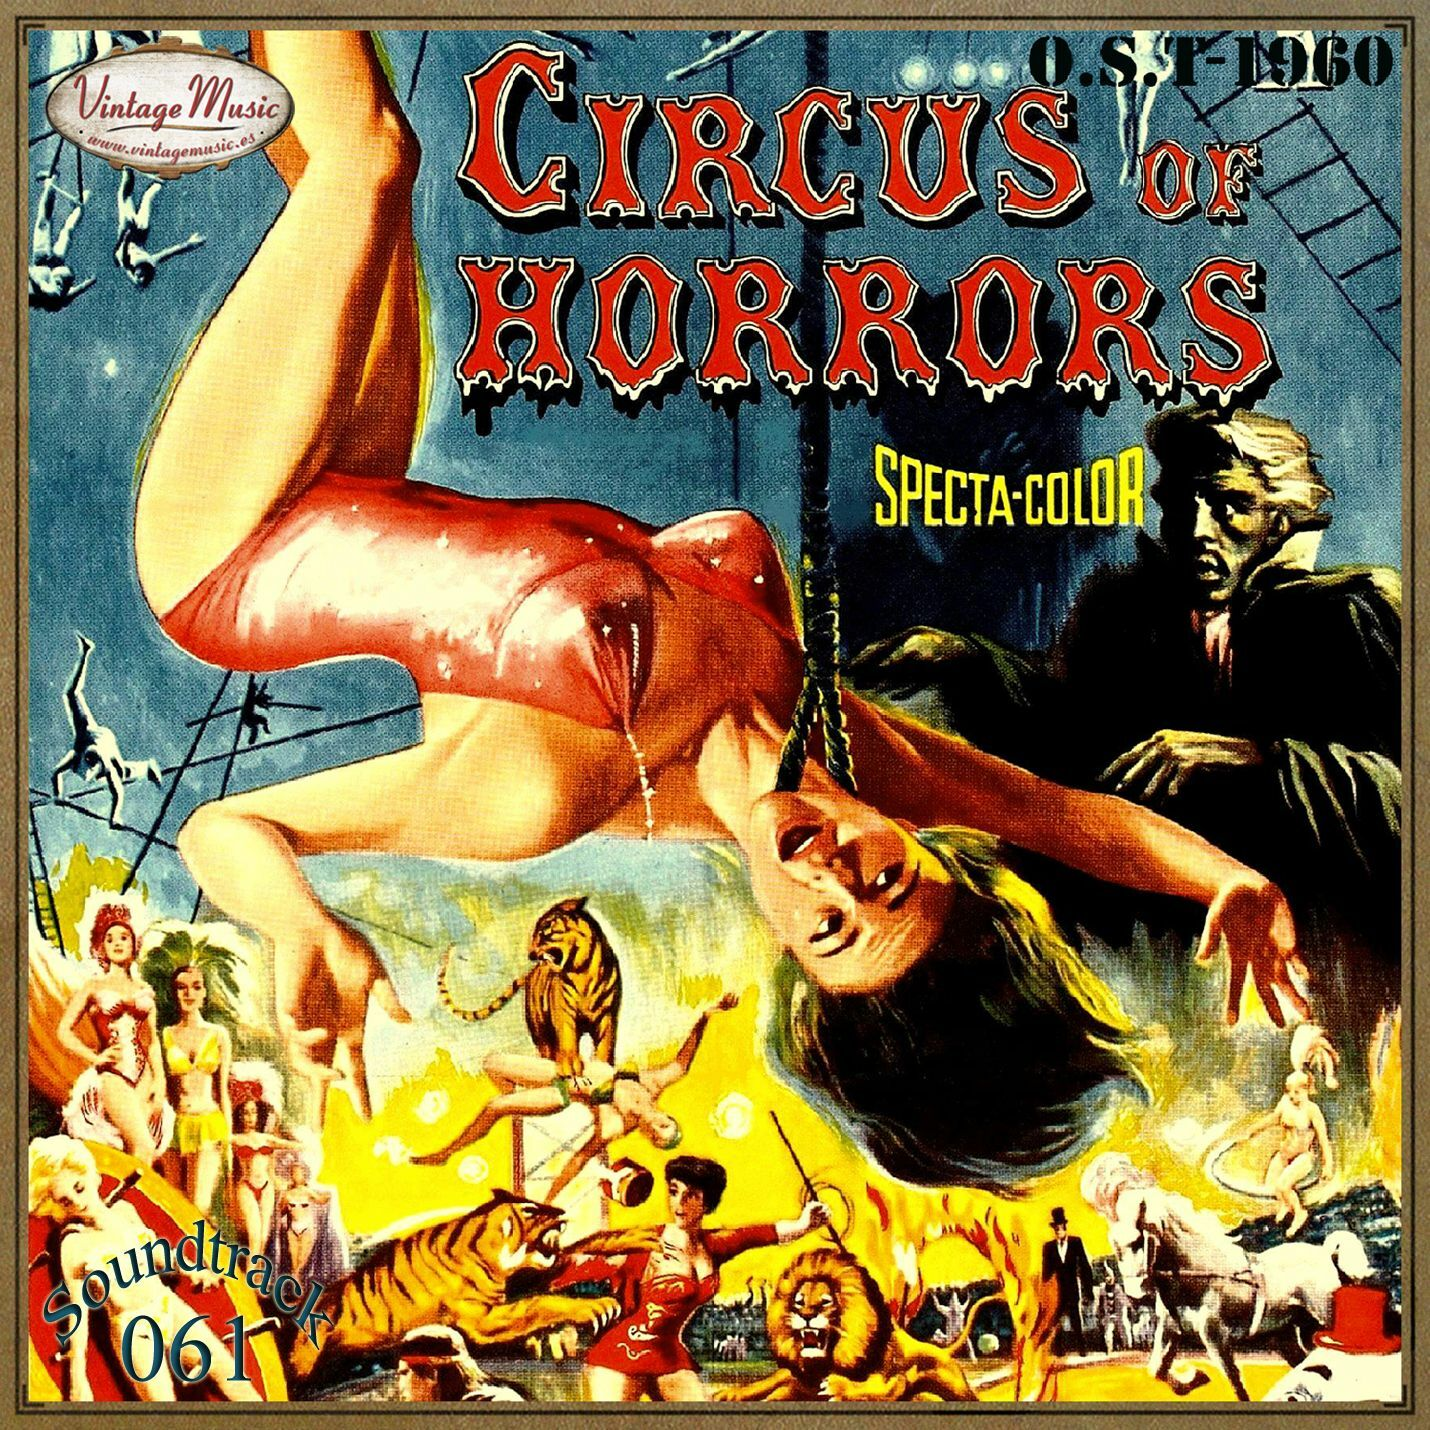 Muir Mathieson - CIRCUS OF HORRORS Soundtrack CD 61/100 - O.S.T 1960 Look For A Star Garry Mills - CD